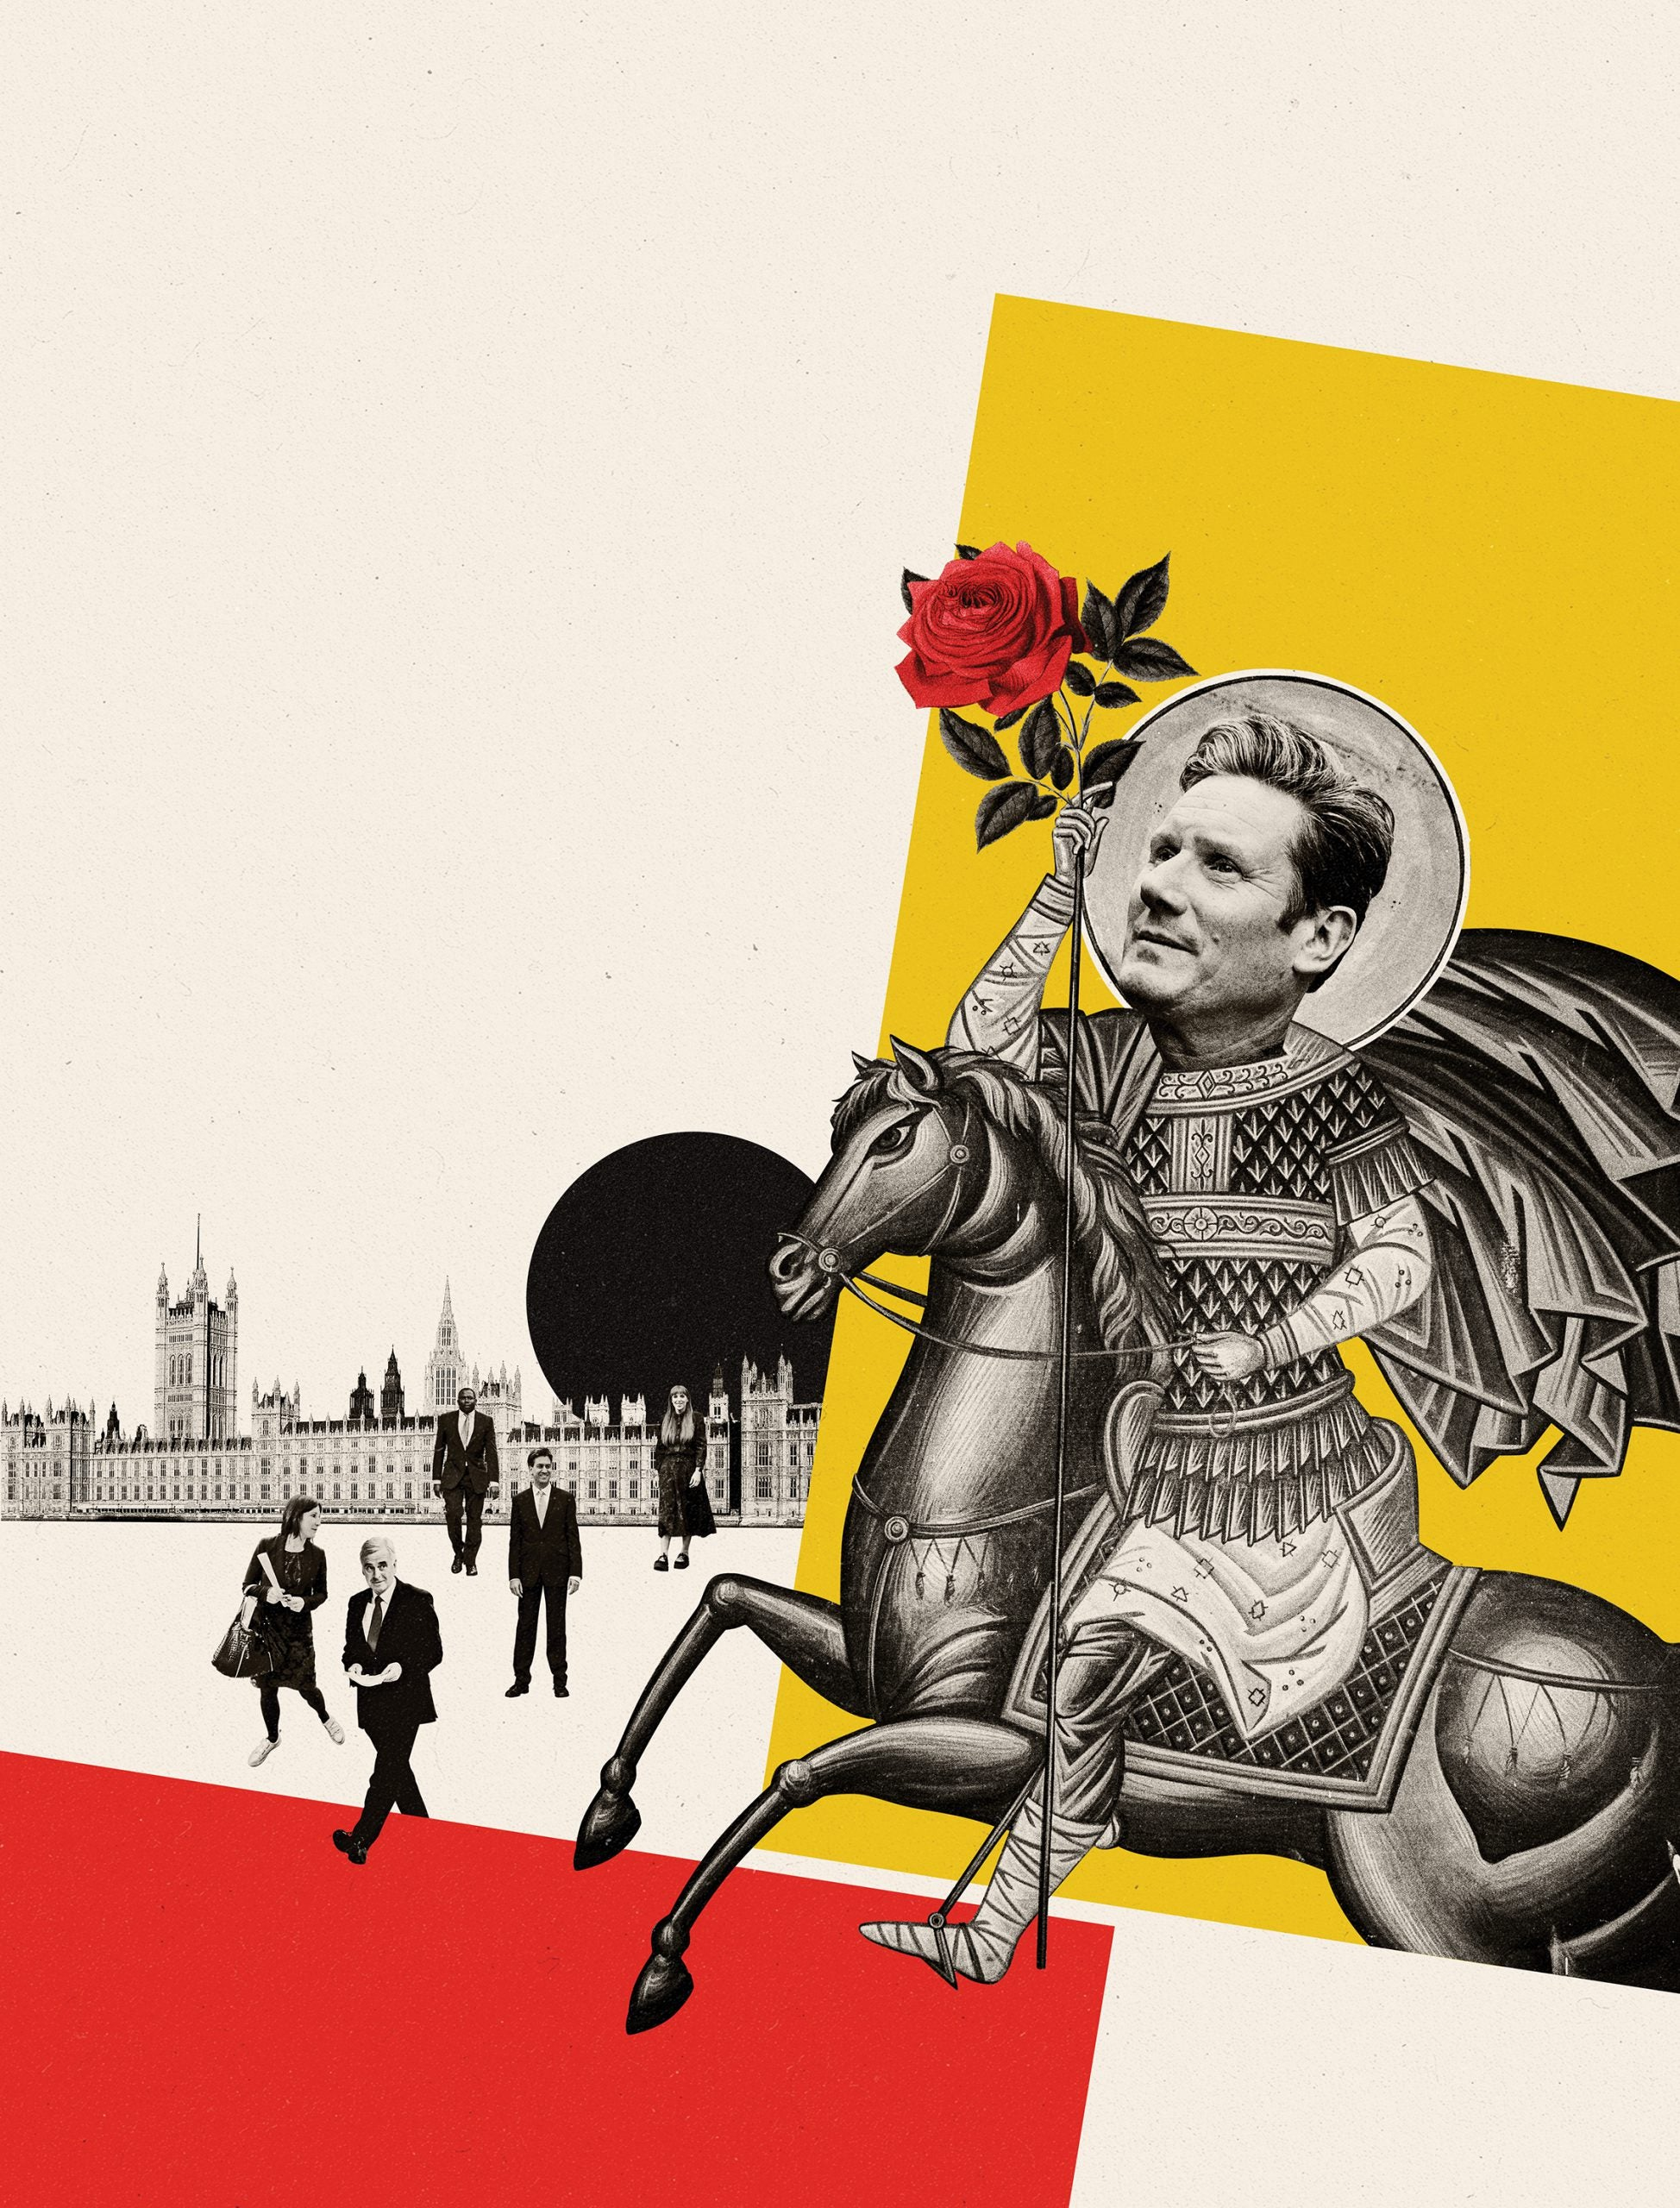 Keir Starmer's quest to reshape Labour